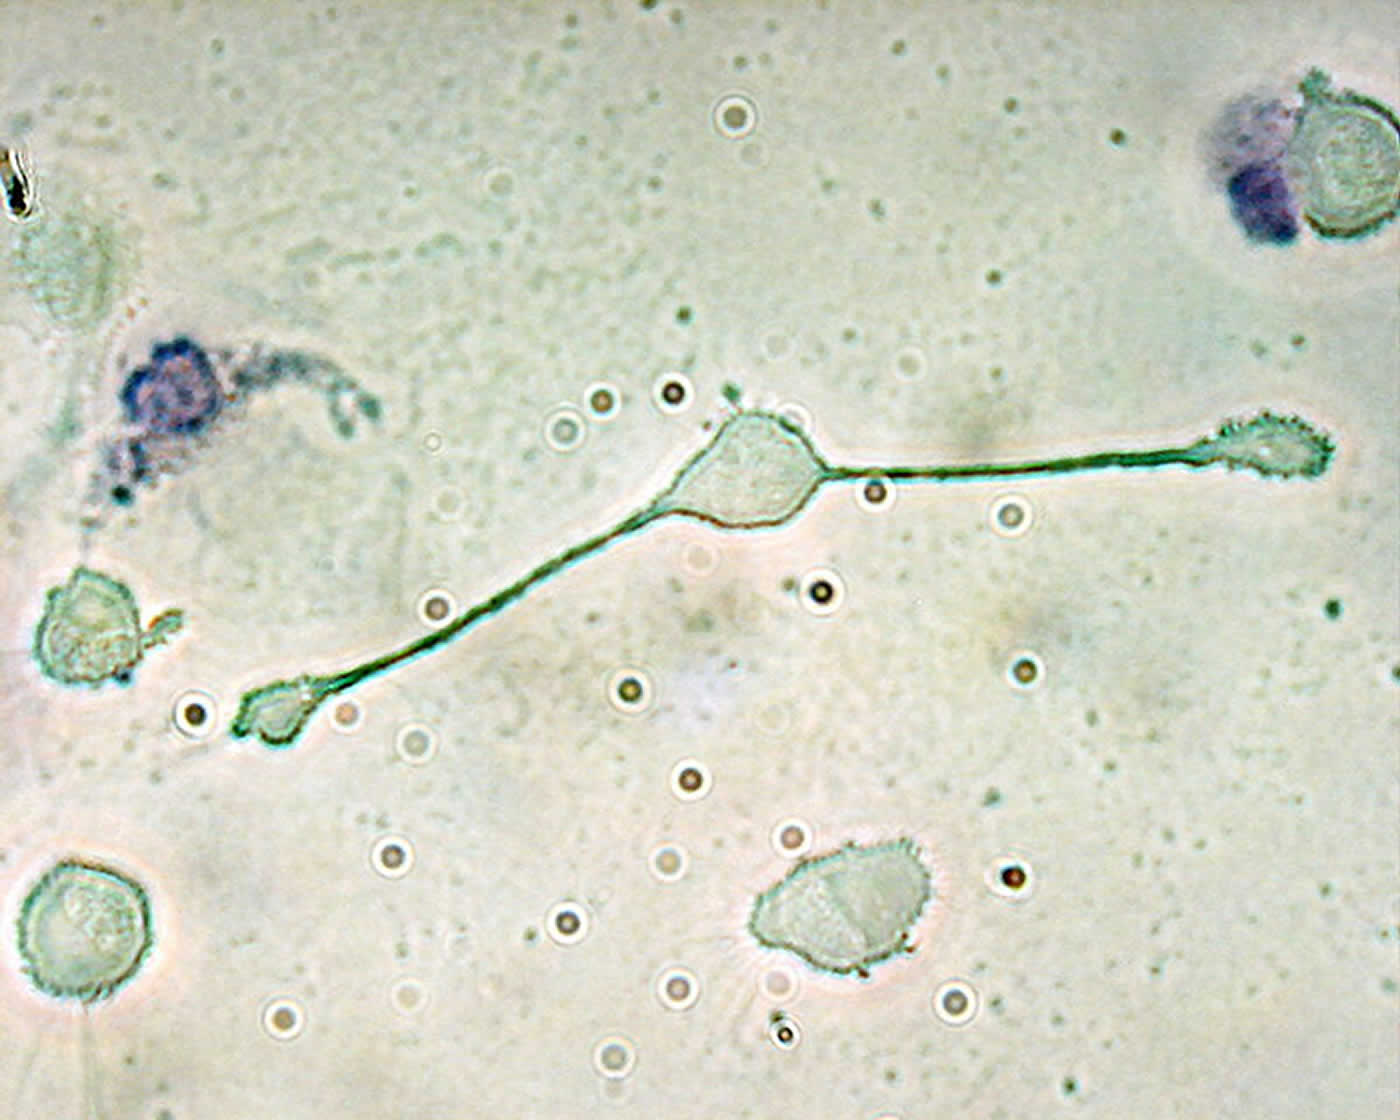 This image shows a macrophage extending its 'arms' to engulf two particles.